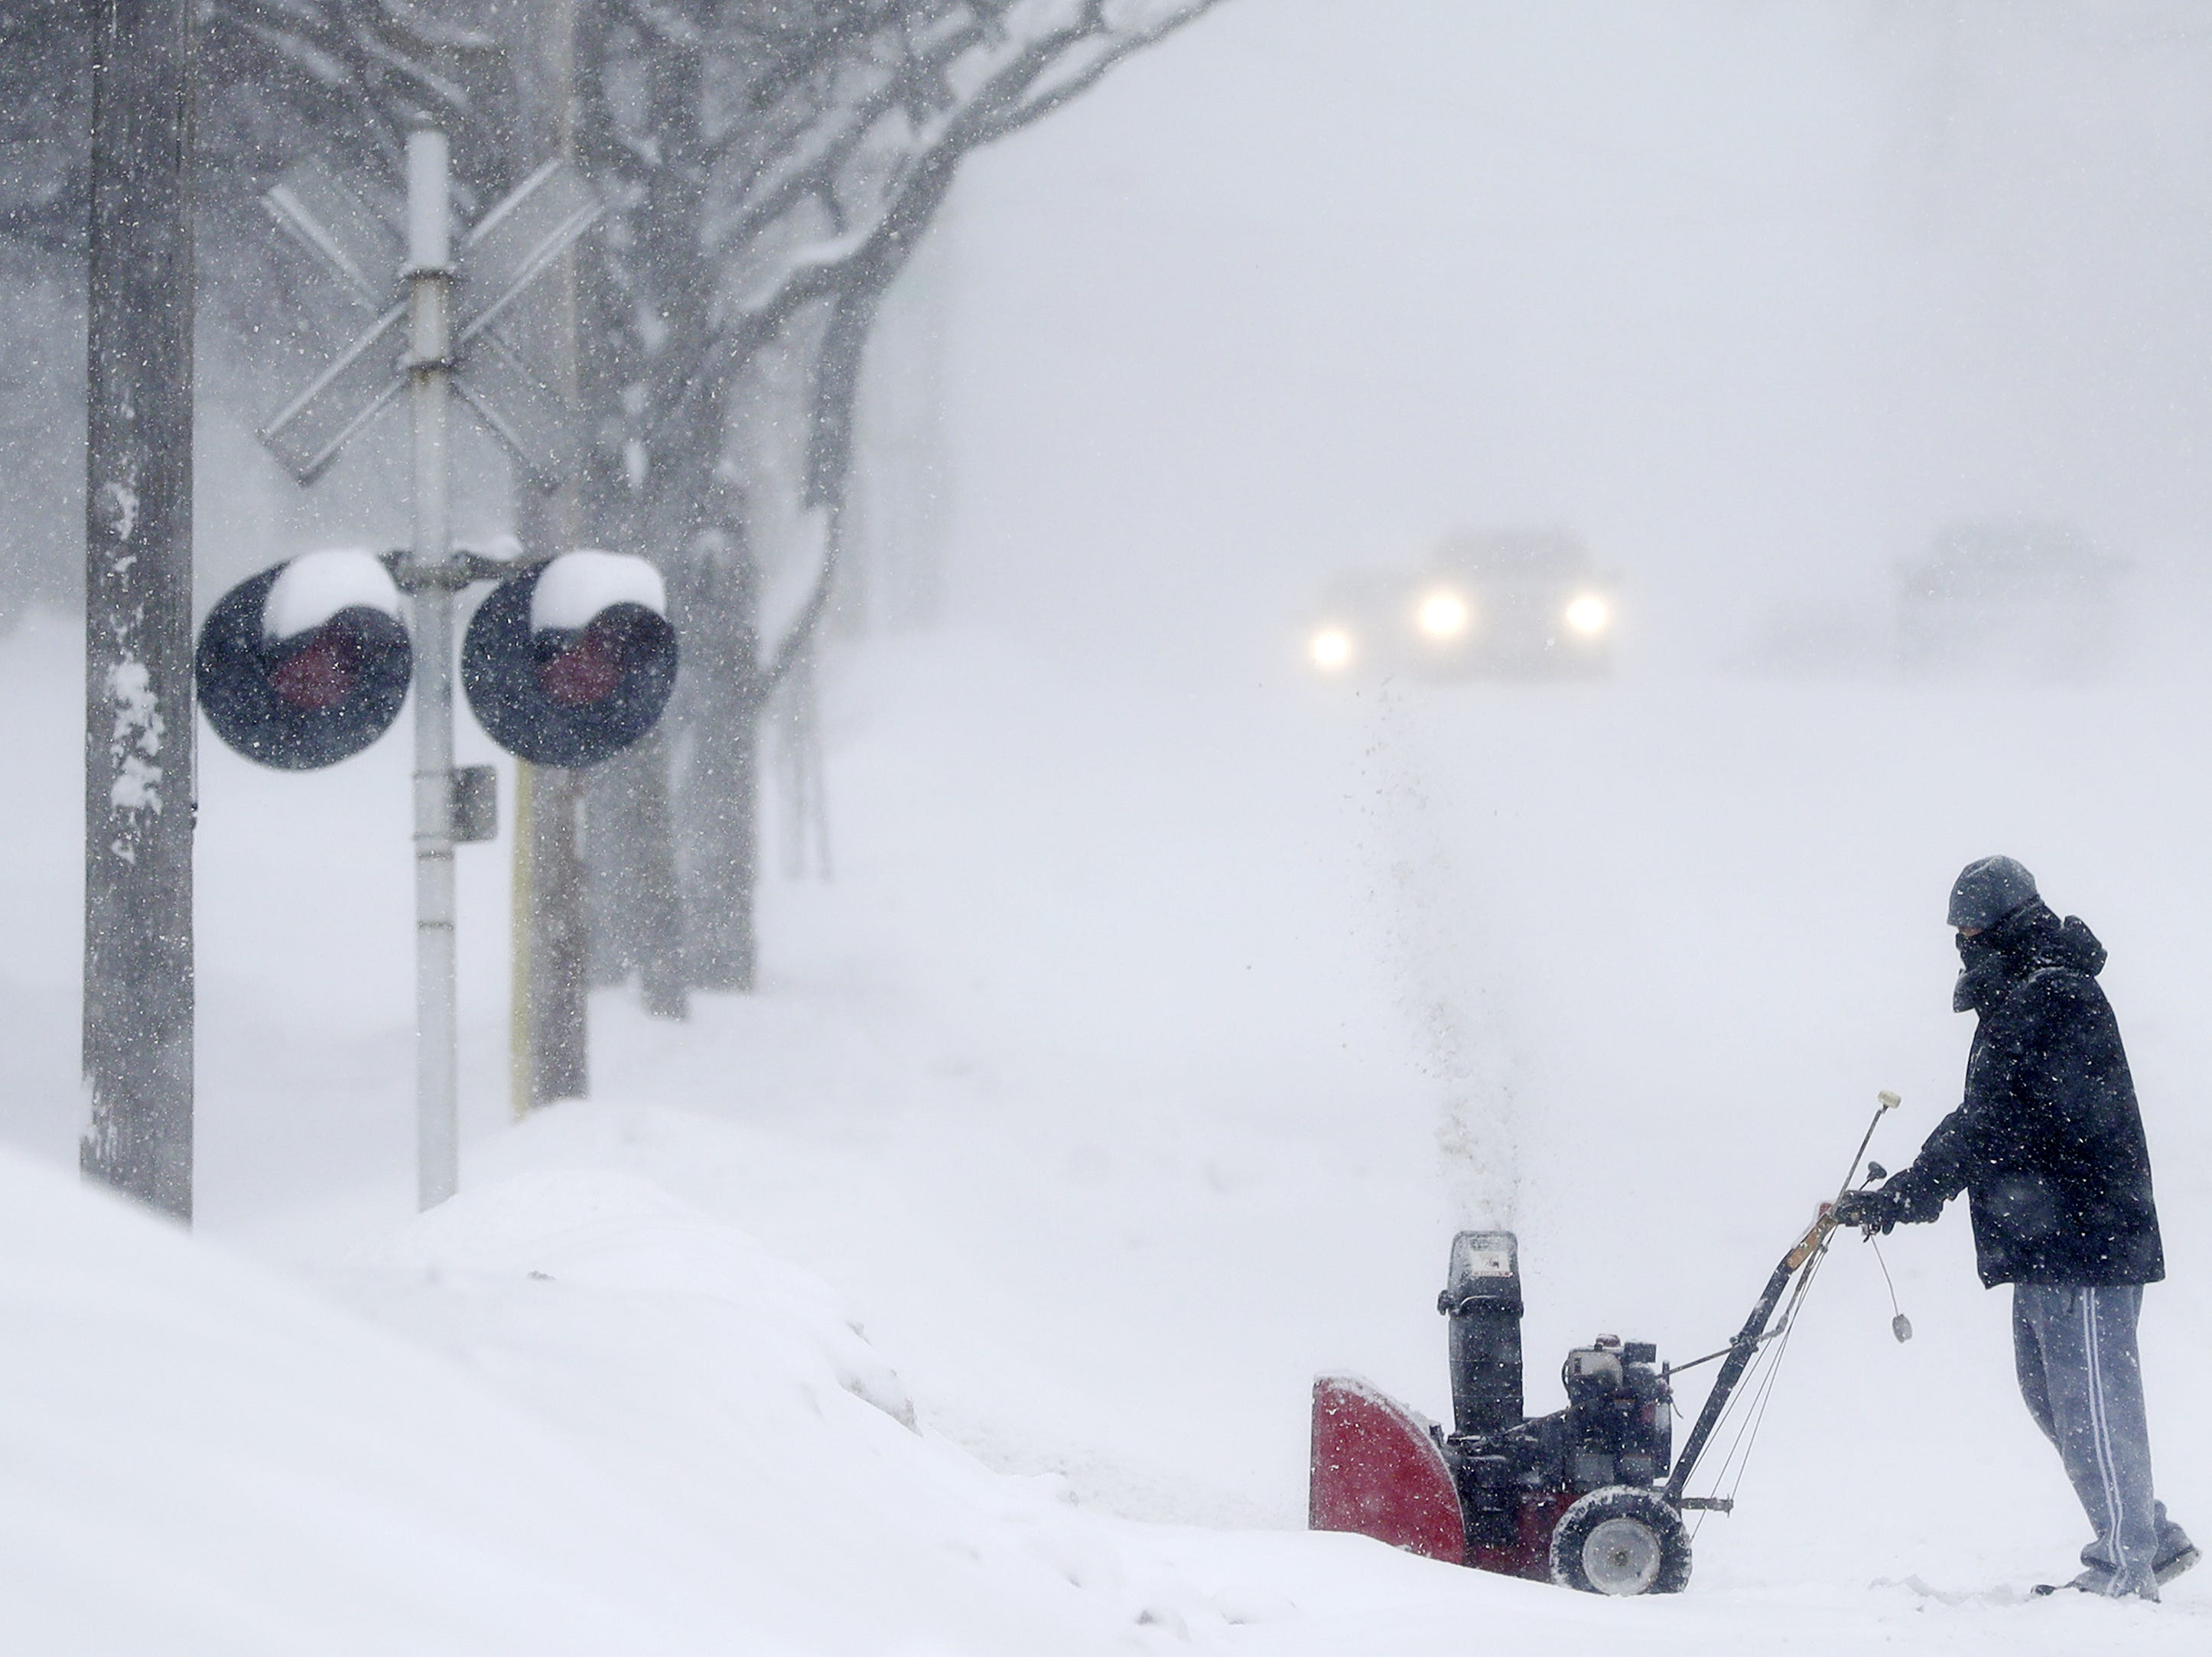 A resident uses a snowblower on his driveway during a snowstorm on Monday, Jan. 28, 2019, in Green Bay, Wis.